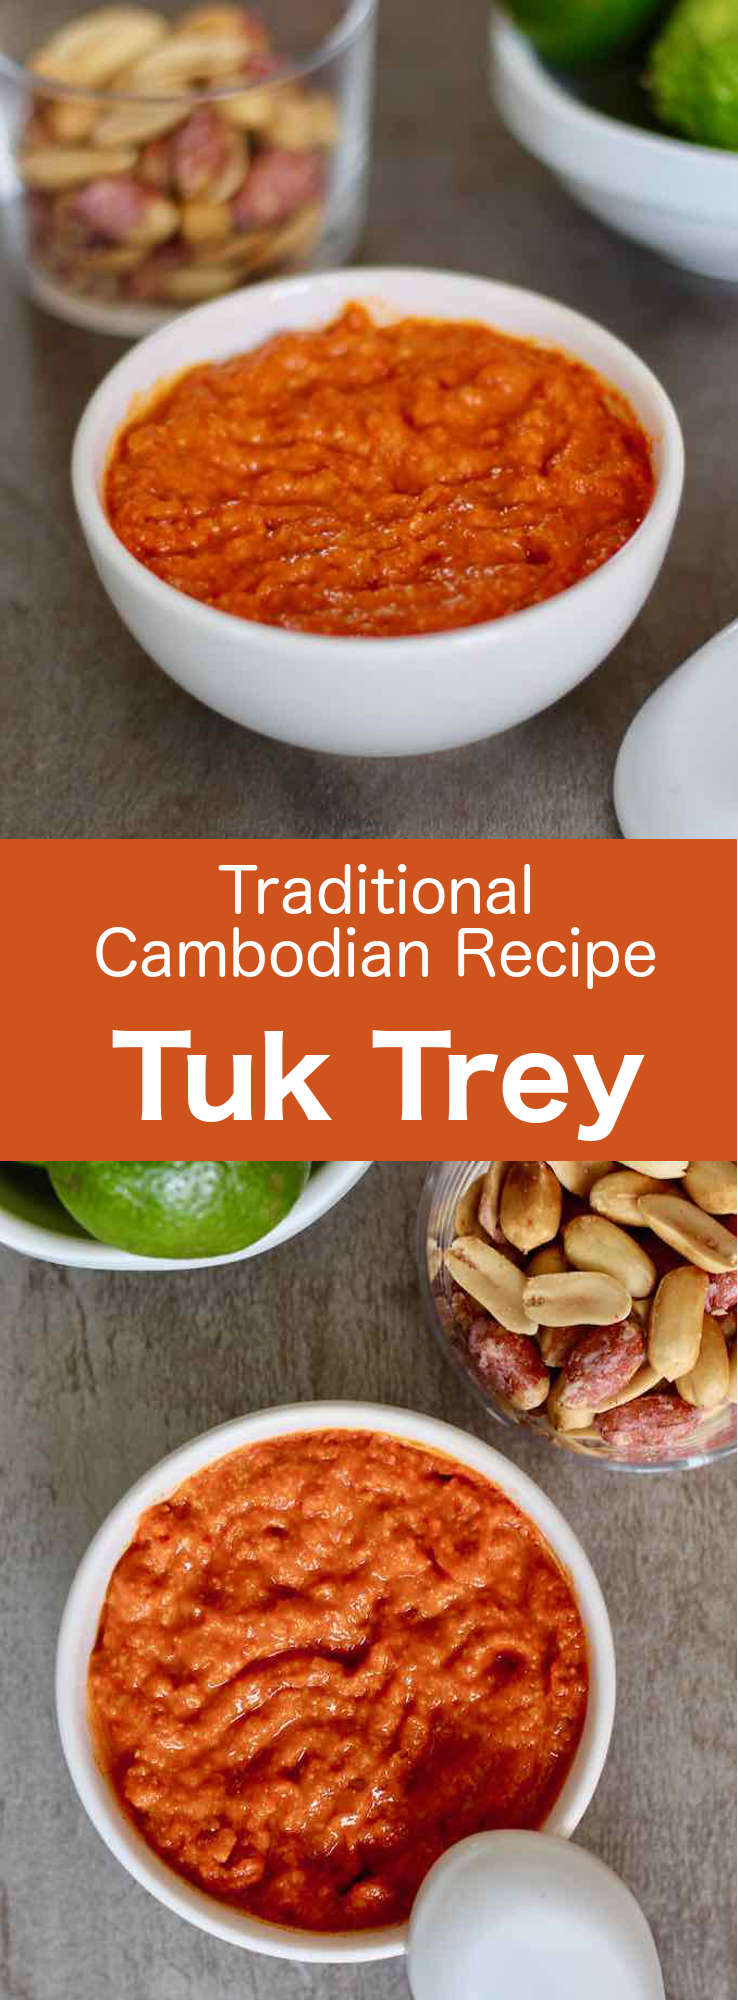 Tuk trey is a Cambodian sauce made from fish sauce, which can be prepared in different ways according to taste. It often complements traditional Cambodian recipes. #Cambodian #CambodianRecipe #CambodianCuisine #AsianCuisine #AsianRecipe #WorldCuisine #196flavors